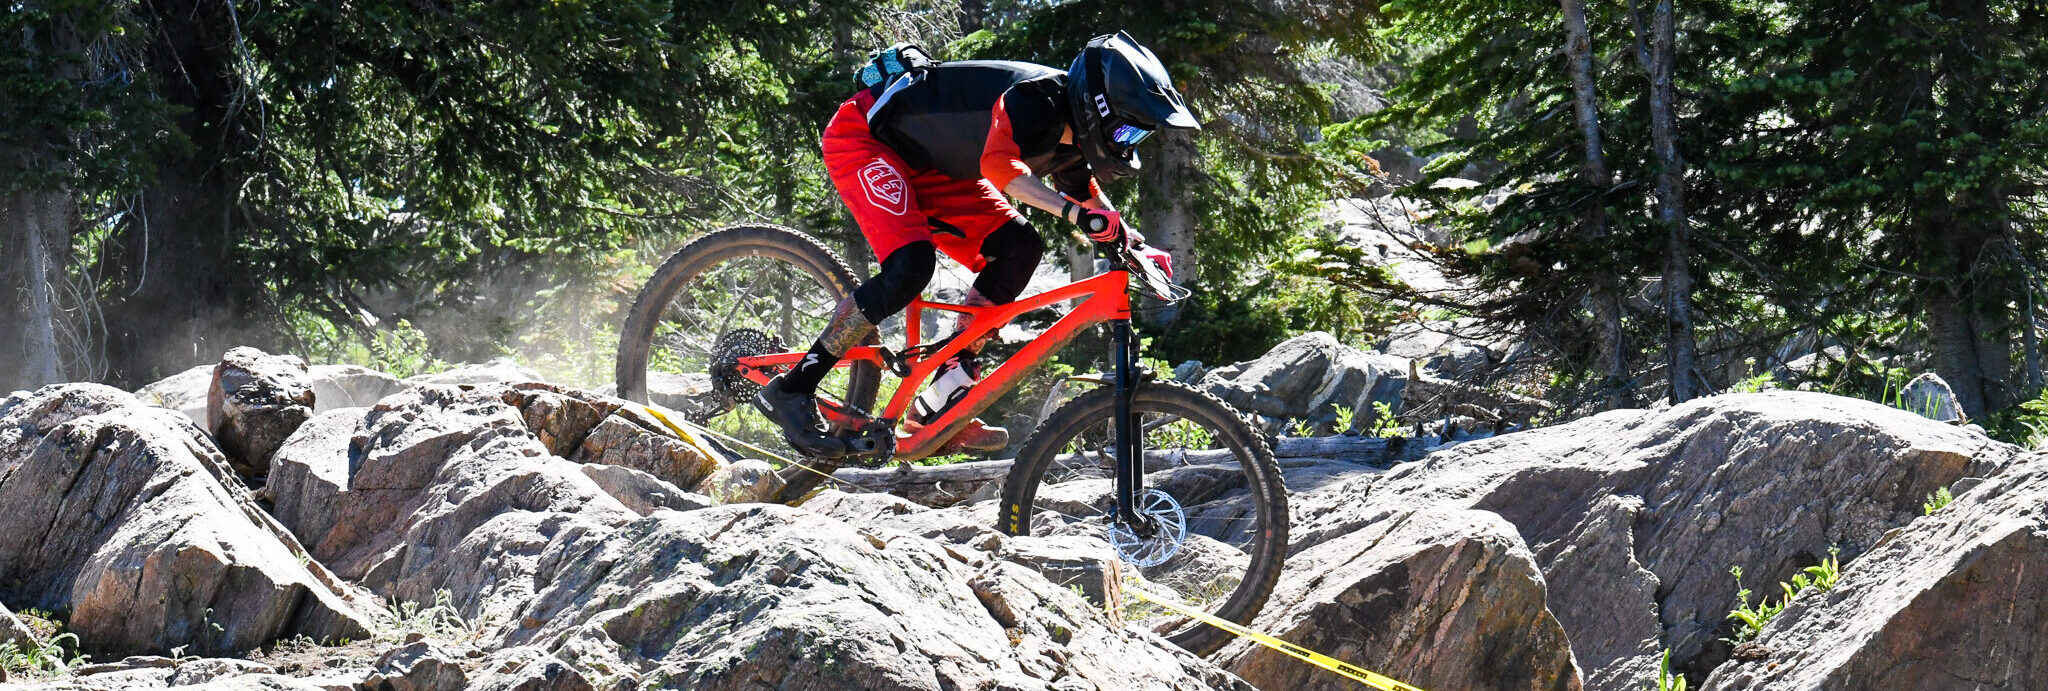 Steamboat Springs Enduro – July 31 and August 1, 2021